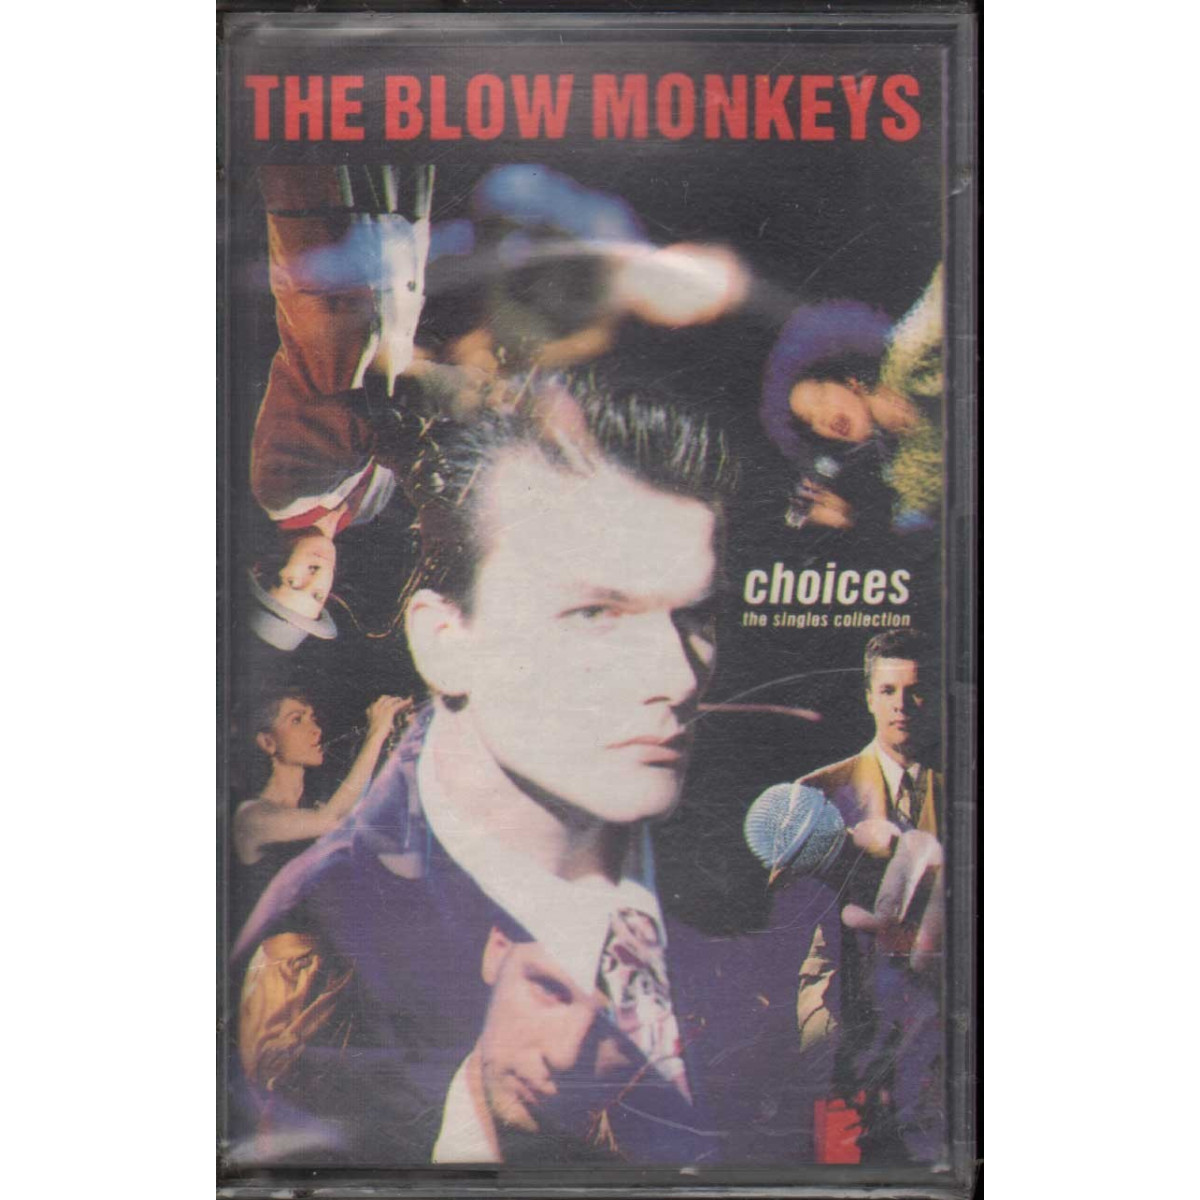 The Blow Monkeys featuring Sylvia Tella - Choice